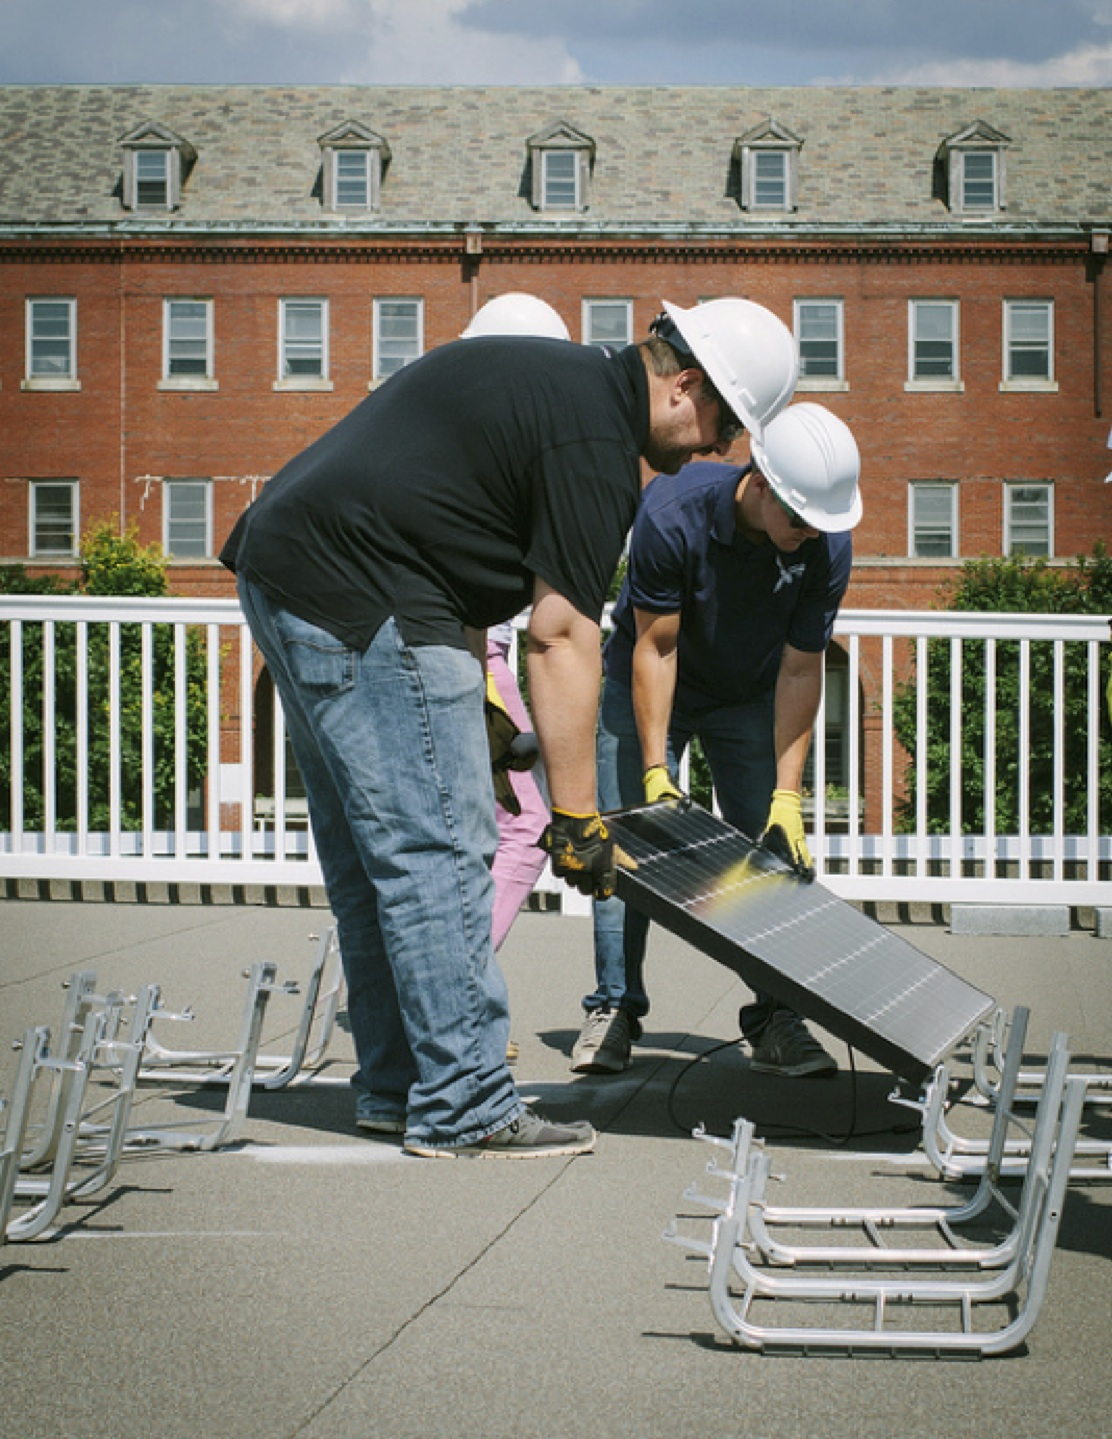 Kevin Wright of UMC Solar assists one of the students in mounting the panel onto the racking system correctly.